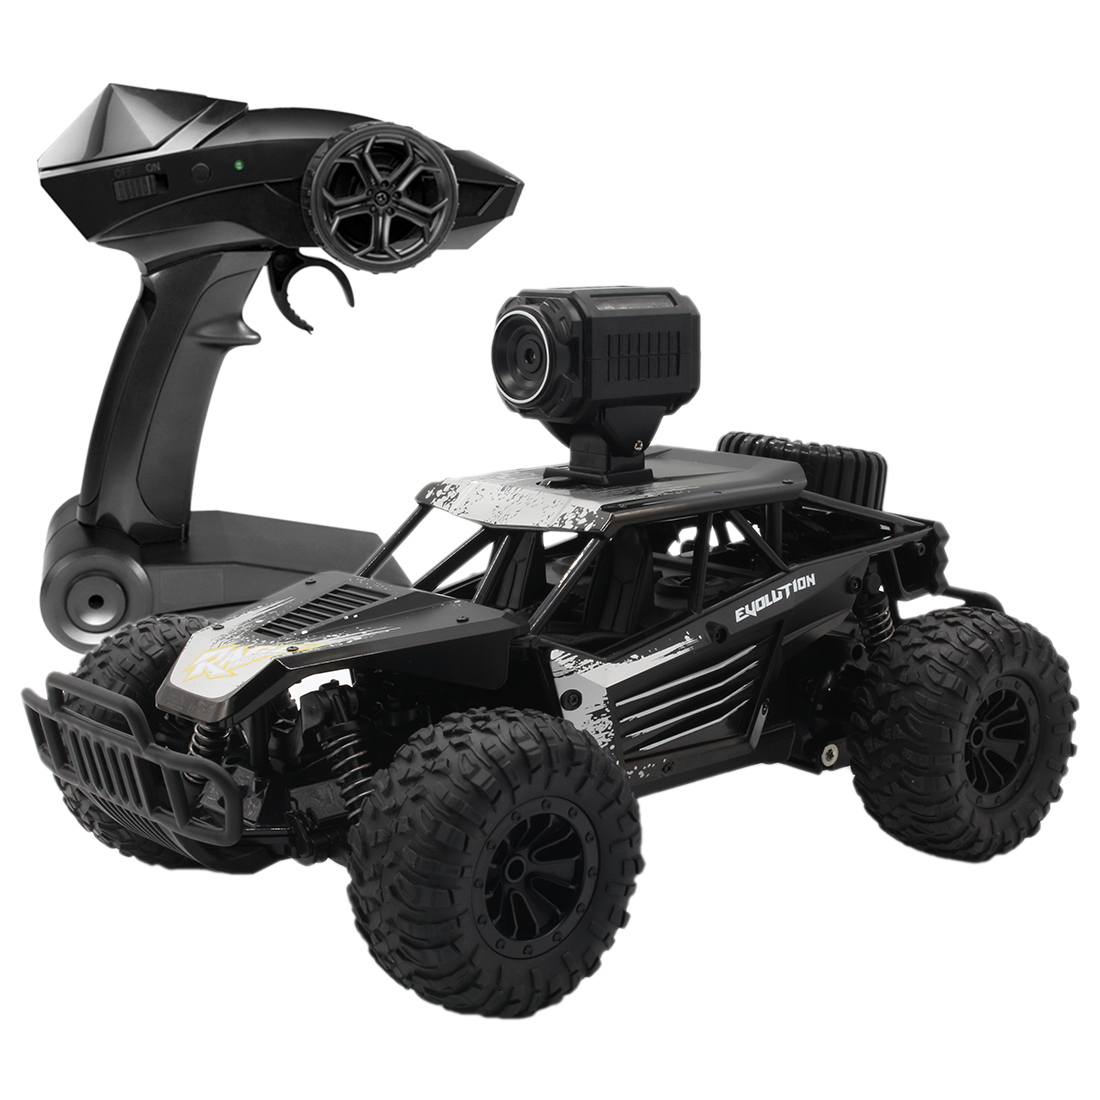 Rowsfire 1:16 2.4G 25km/H High-Speed RC Off-Road Vehicle Drift Car Monster Truck Climbing With WIFI 720P HD Camera